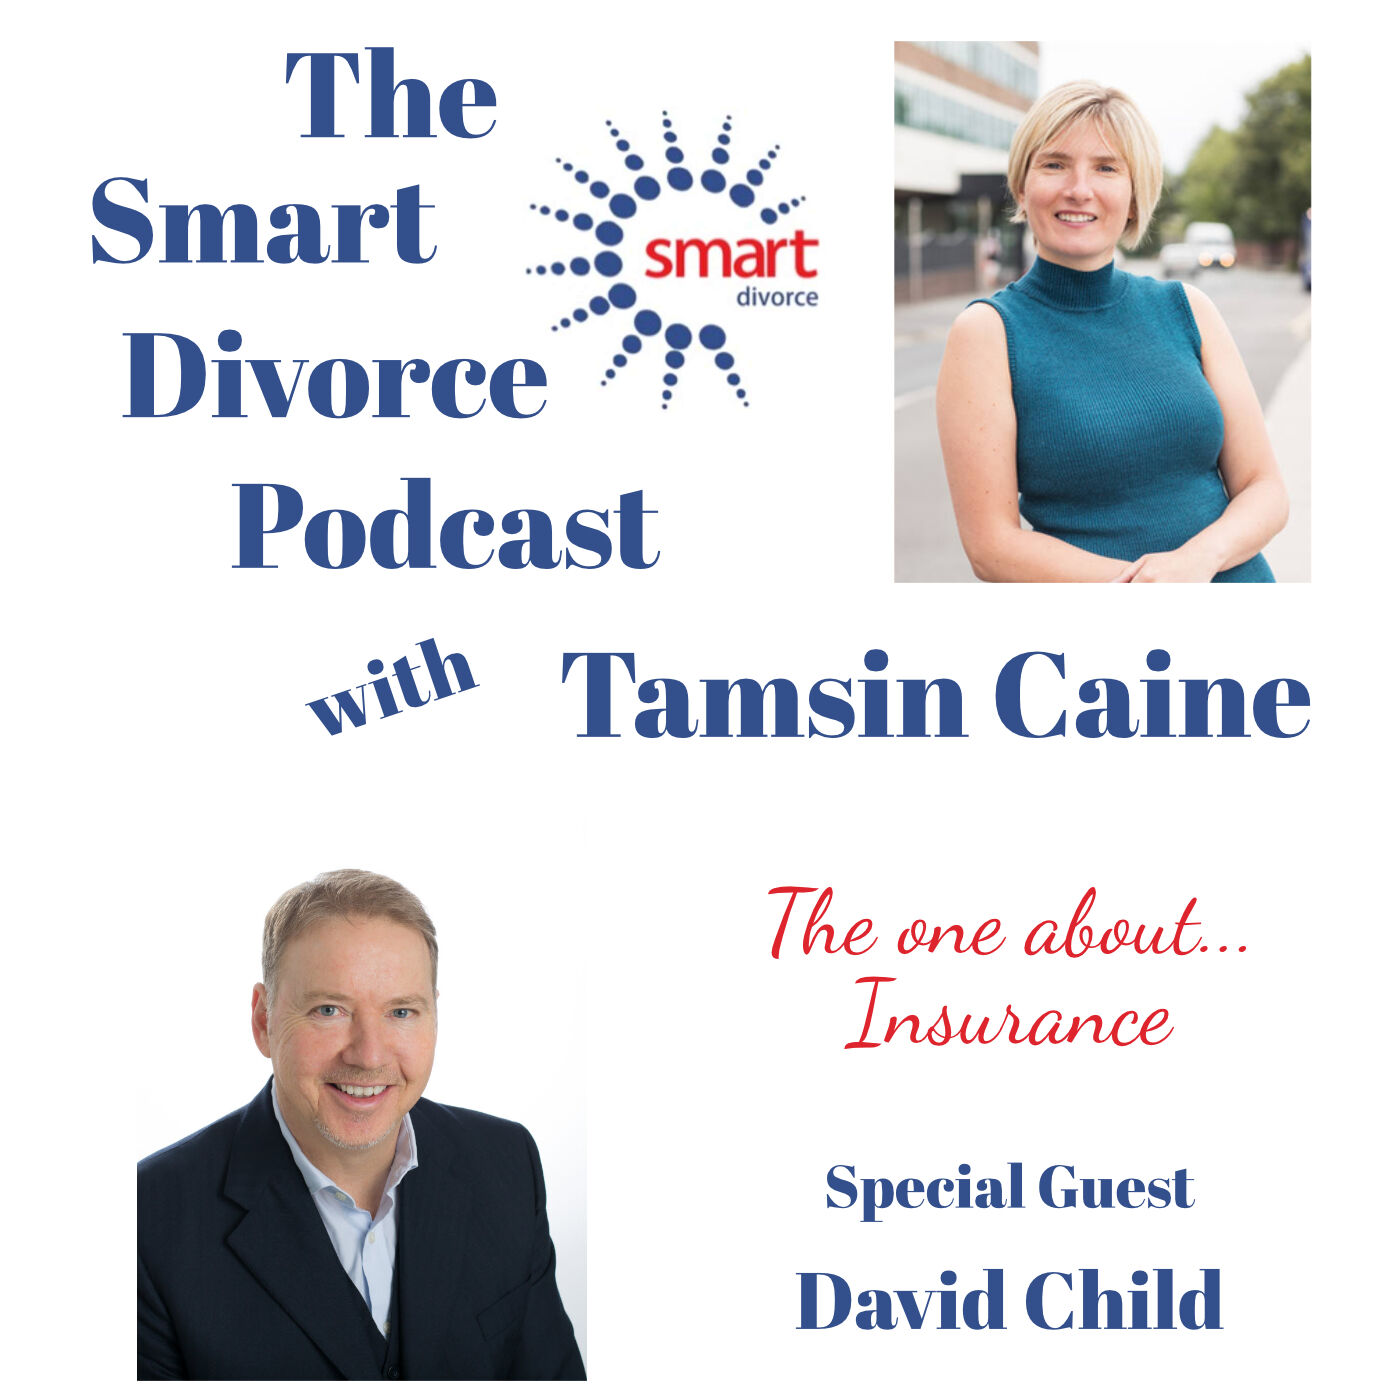 The Smart Divorce Podcast - The one about... Insurance